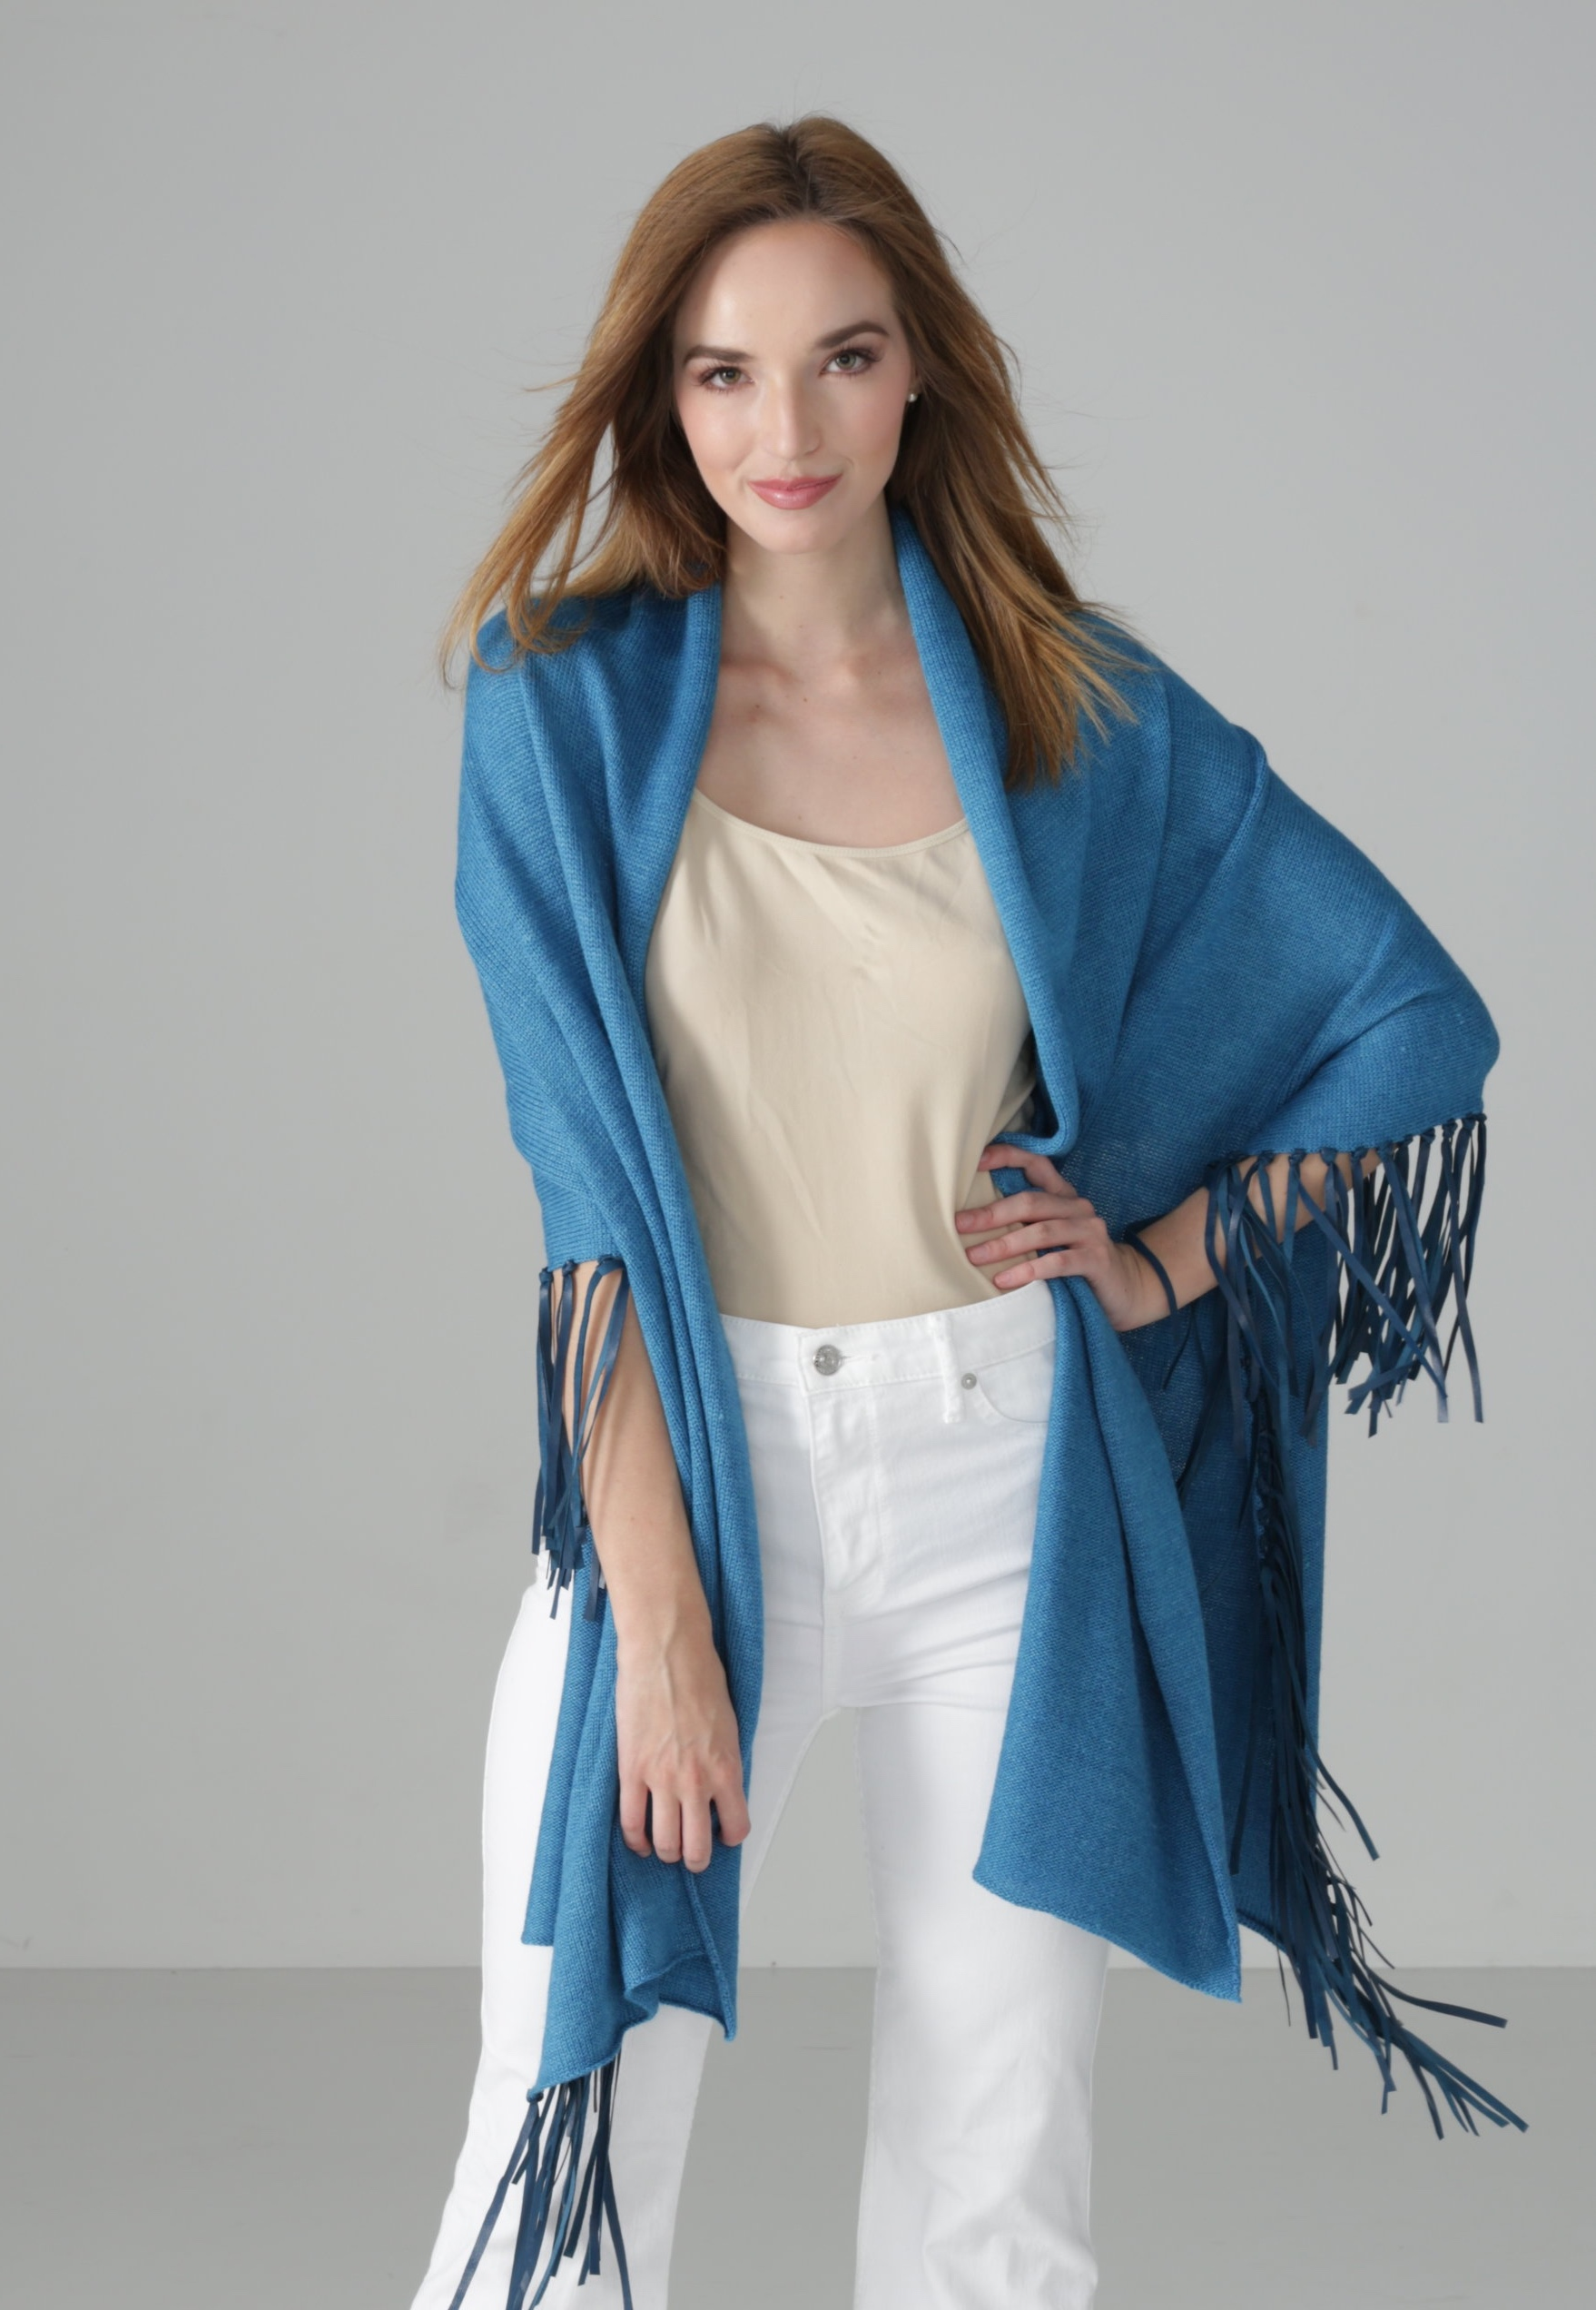 Marine Blue Wrap with Leather Fringe